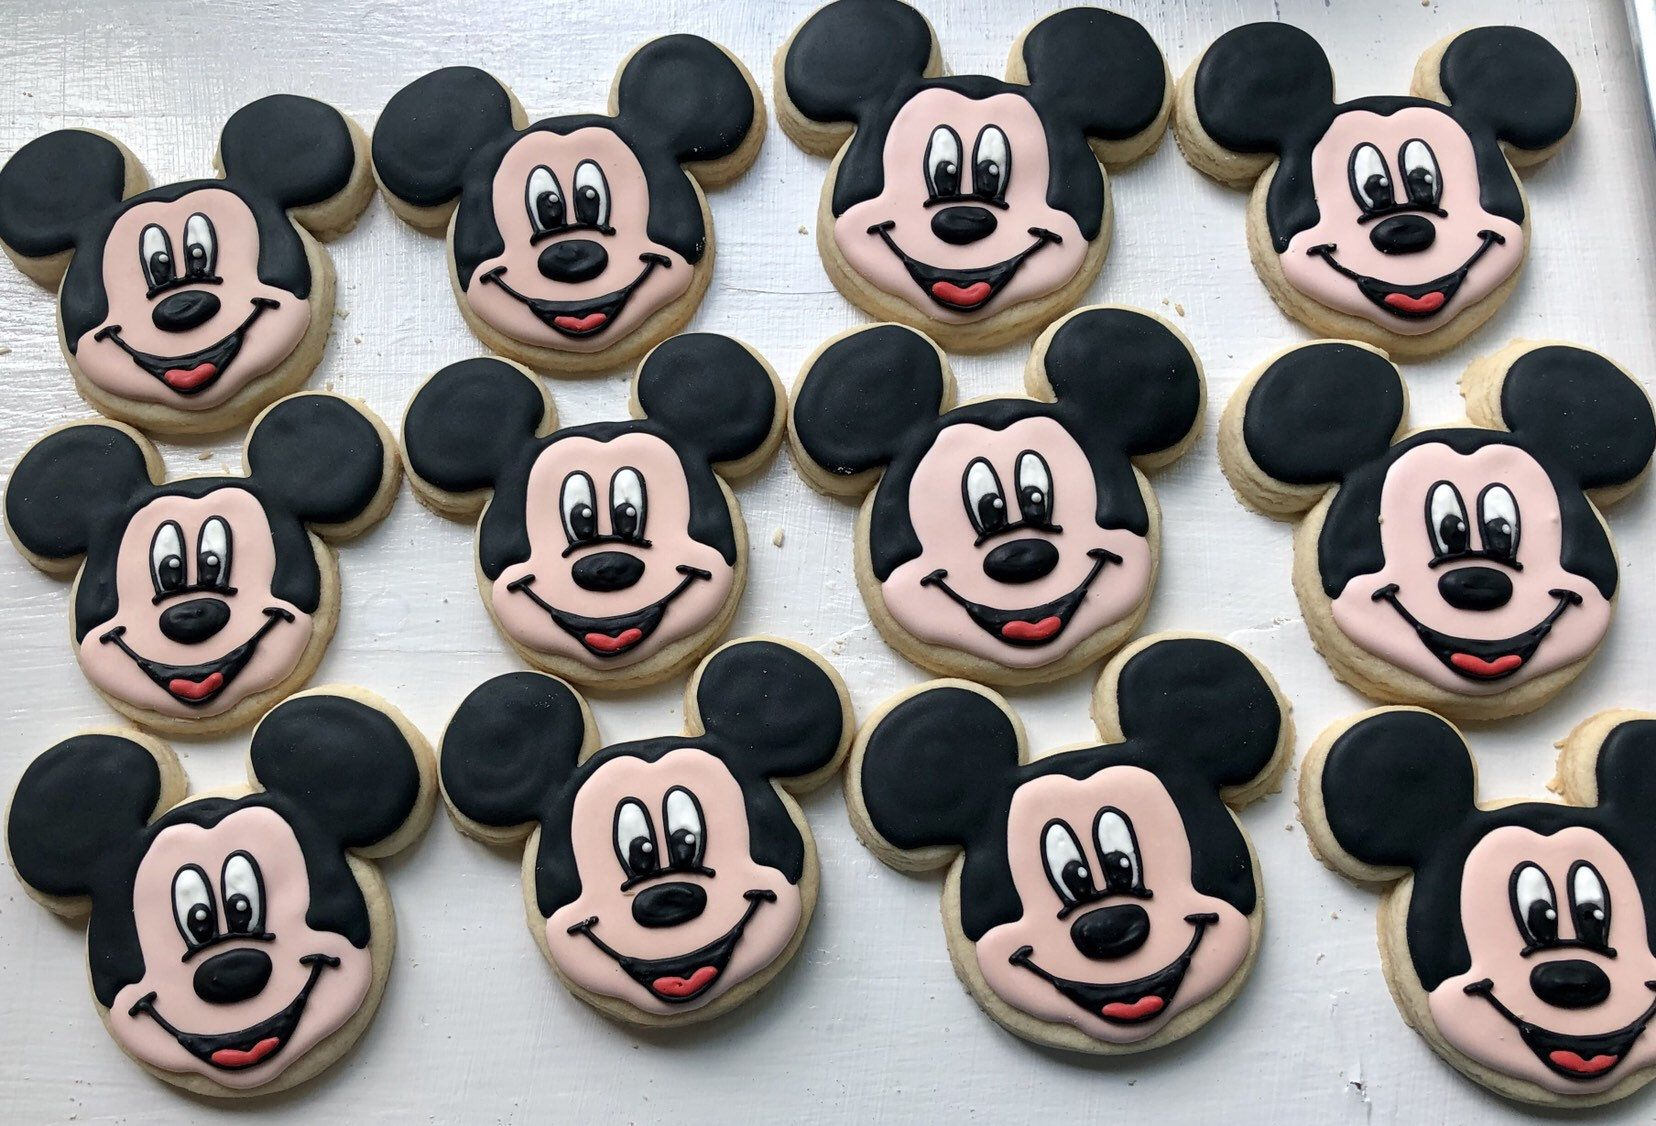 Mickey Mouse Cookies by TheLittleBakerCo on Etsy https://www.etsy.com/listing/711113426/mickey ...